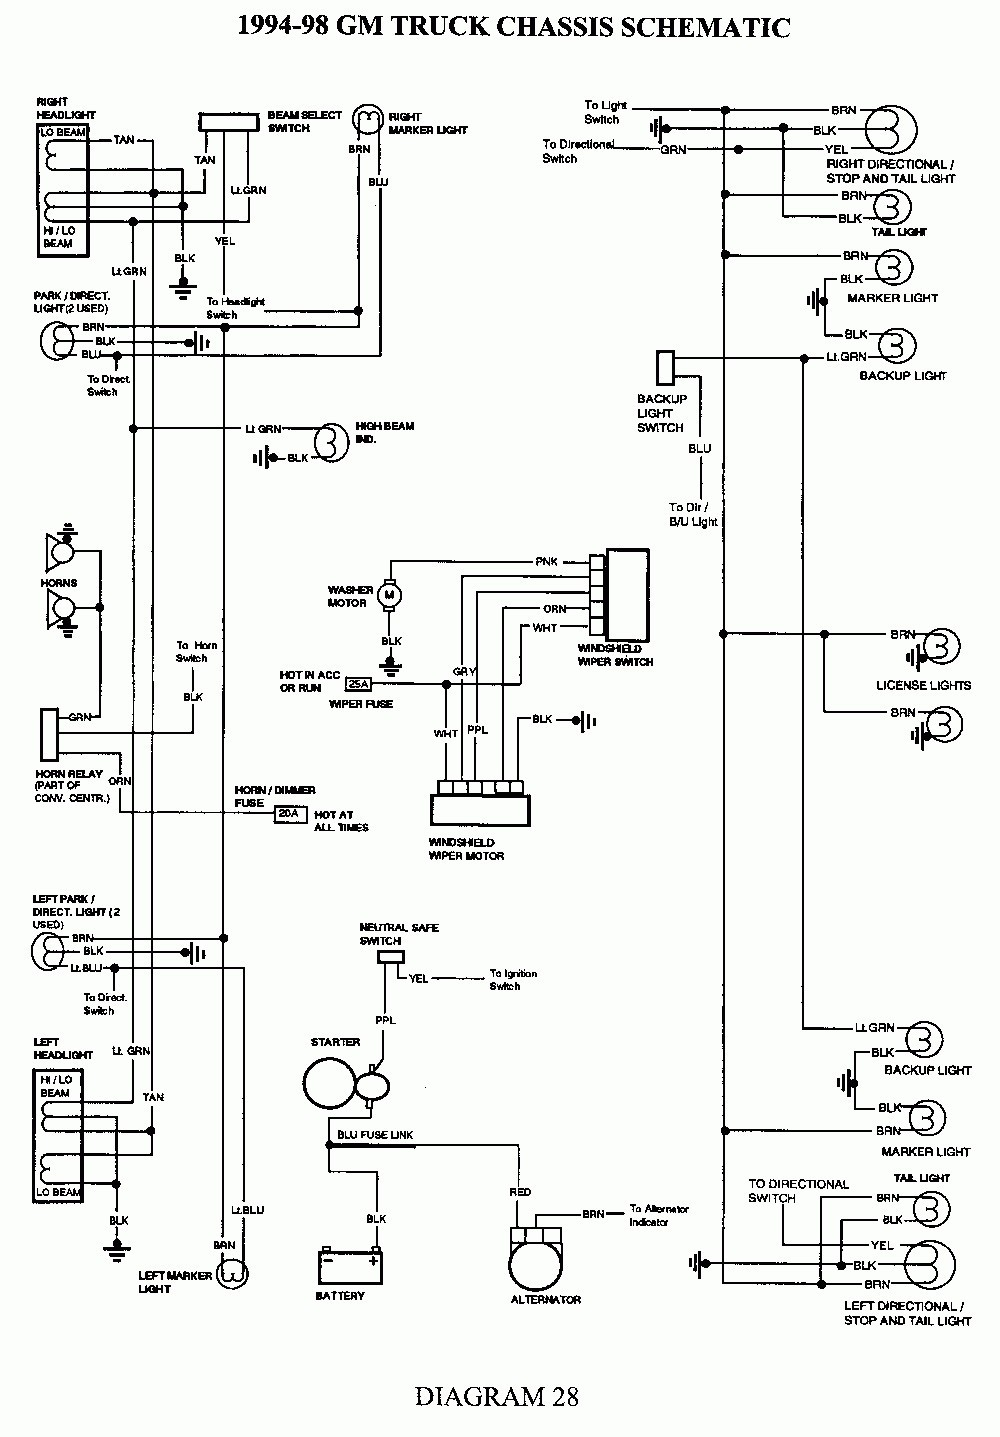 92 Camaro Dash Wiring Diagrams Free Picture Diagram - Box Wiring Diagram •box wiring diagram